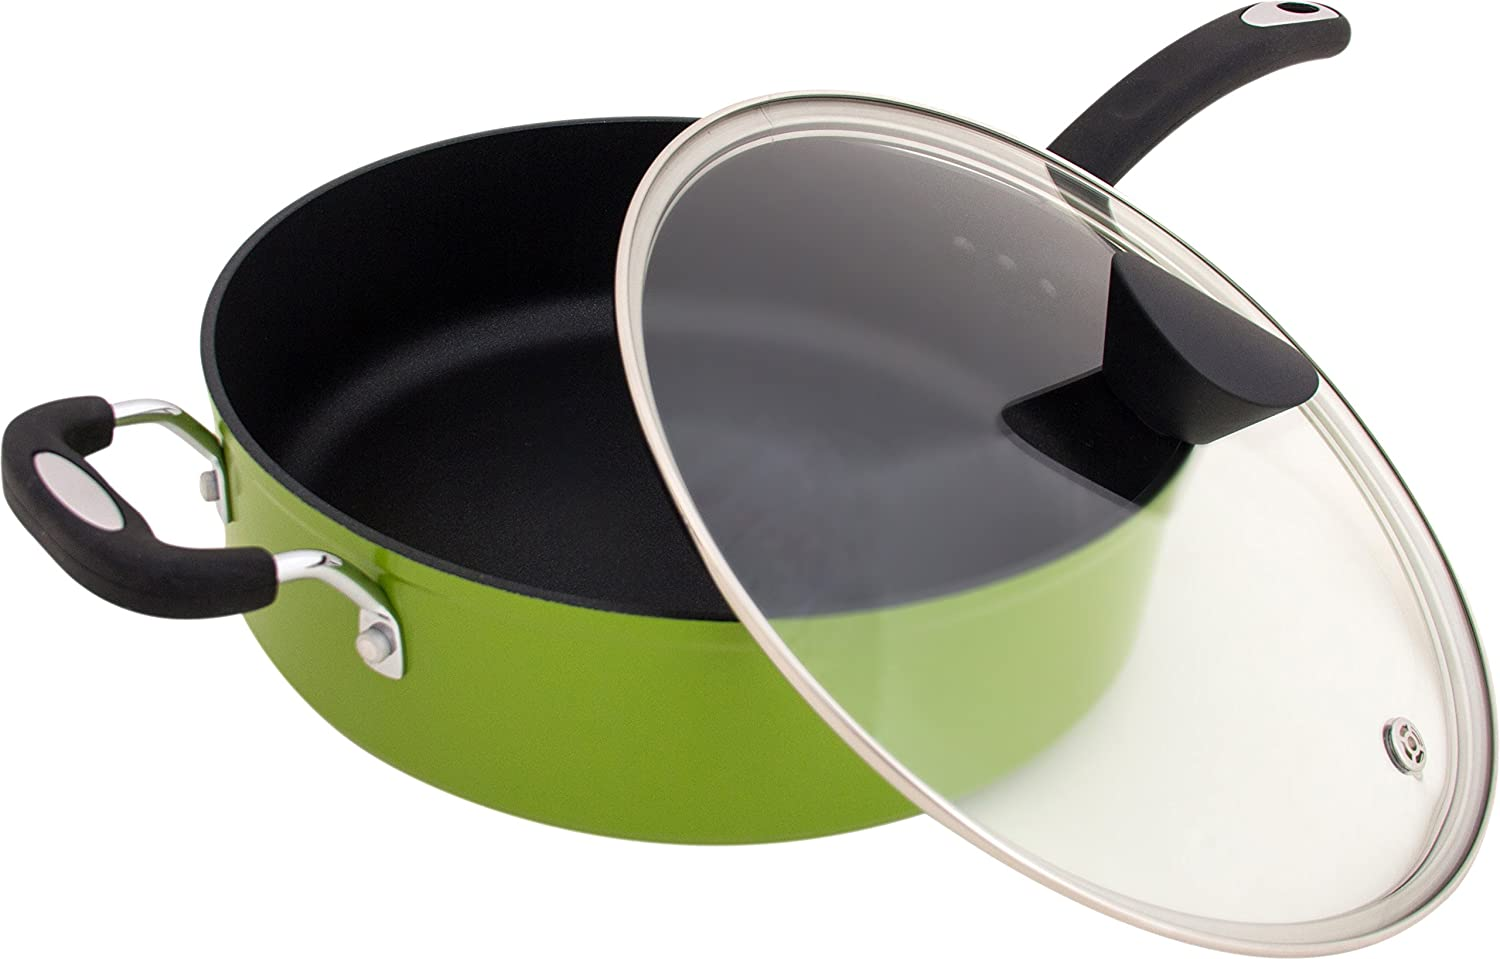 Ozeri The Green Earth All-In-One Sauce Pan with Ceramic Non-Stick Coating from Germany (100% PFOA & APEO Free) ZP7-5L